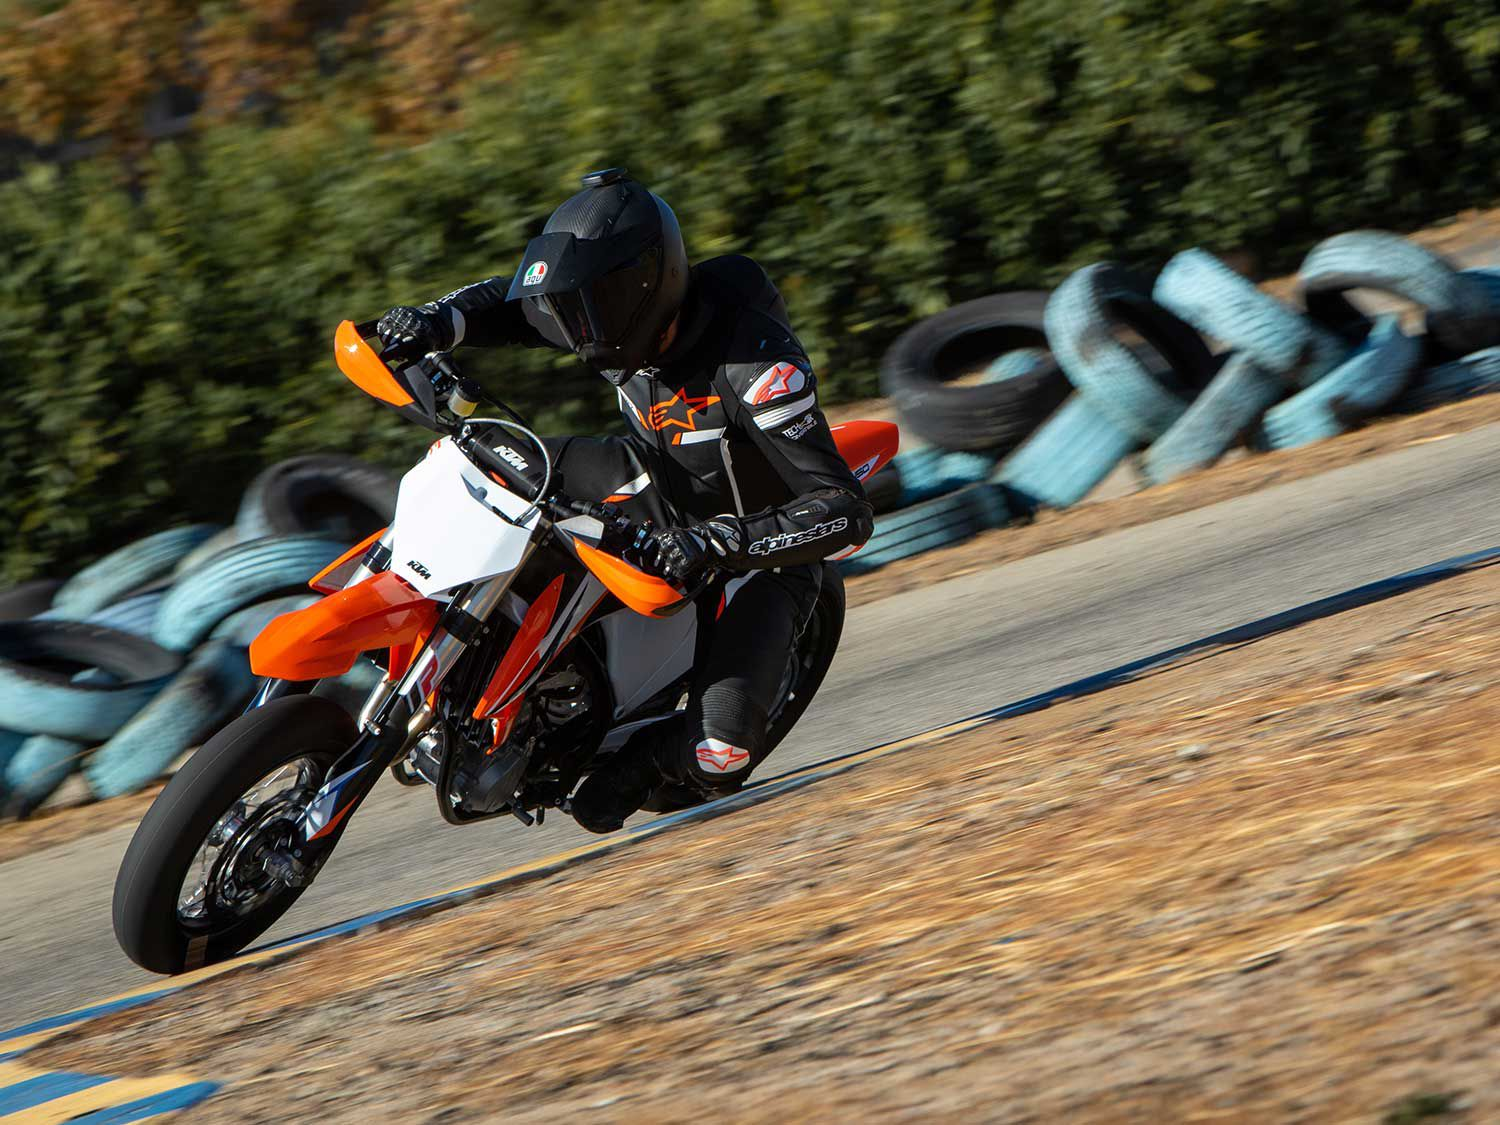 Supermoto junkies rejoice as KTM imports its 450 SMR into the North American market for the 2021 model year.